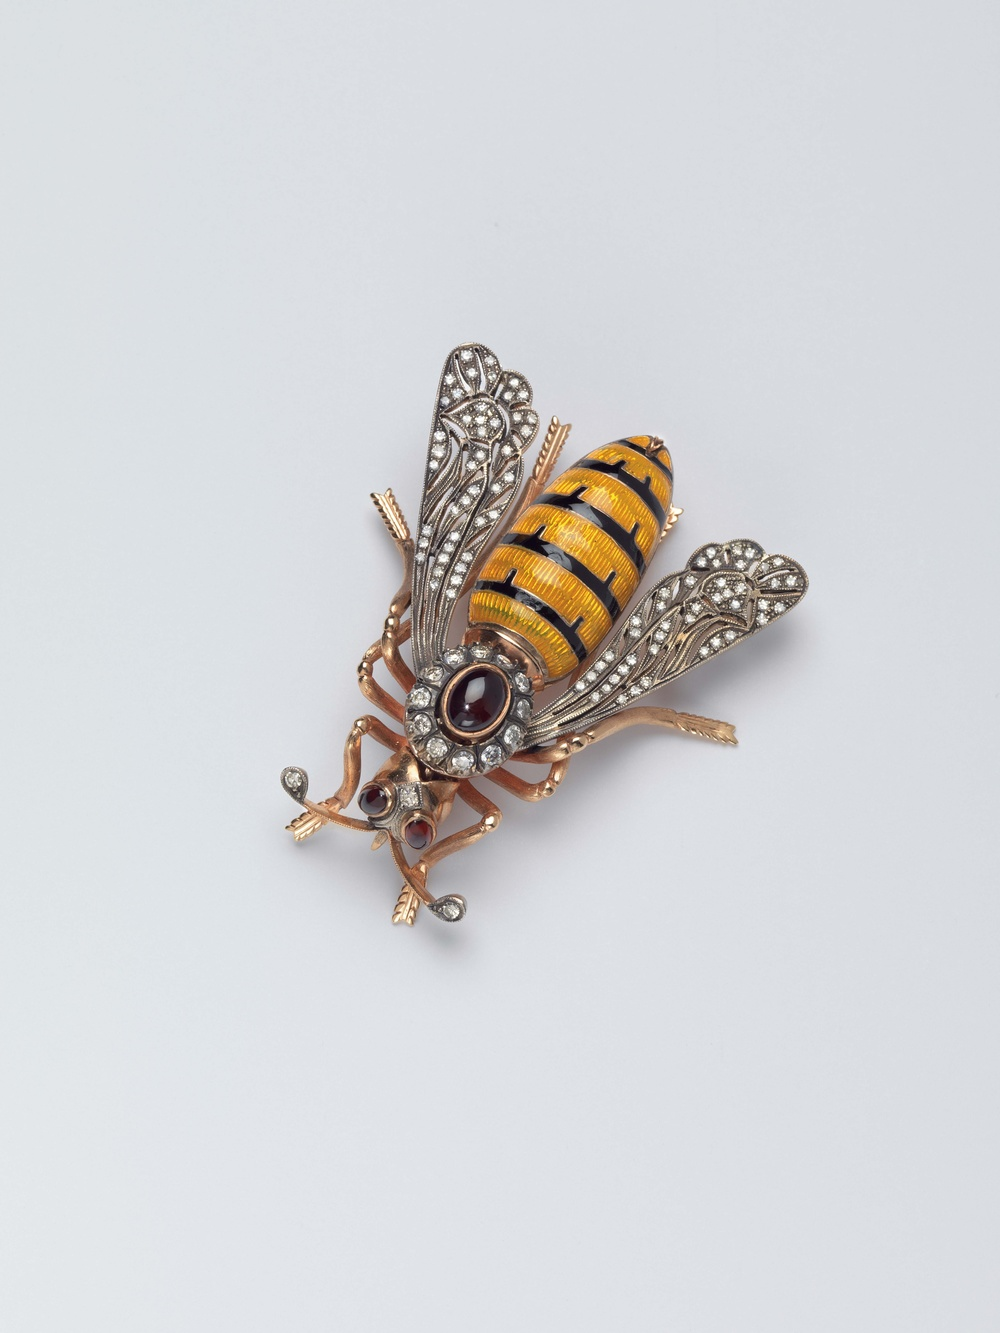 "Bee, Designer Unknown, USA. c. 1980.  Photo by John Bigelow Taylor.For a meeting with Yasser Arafat, Albright wore this bee pin. She writes, ""I spent manyhours wrangling with the Palestinian leader about the need for compromise in the MiddleEast. My pin reflected my mood."" (He sent her a butterfly.)"